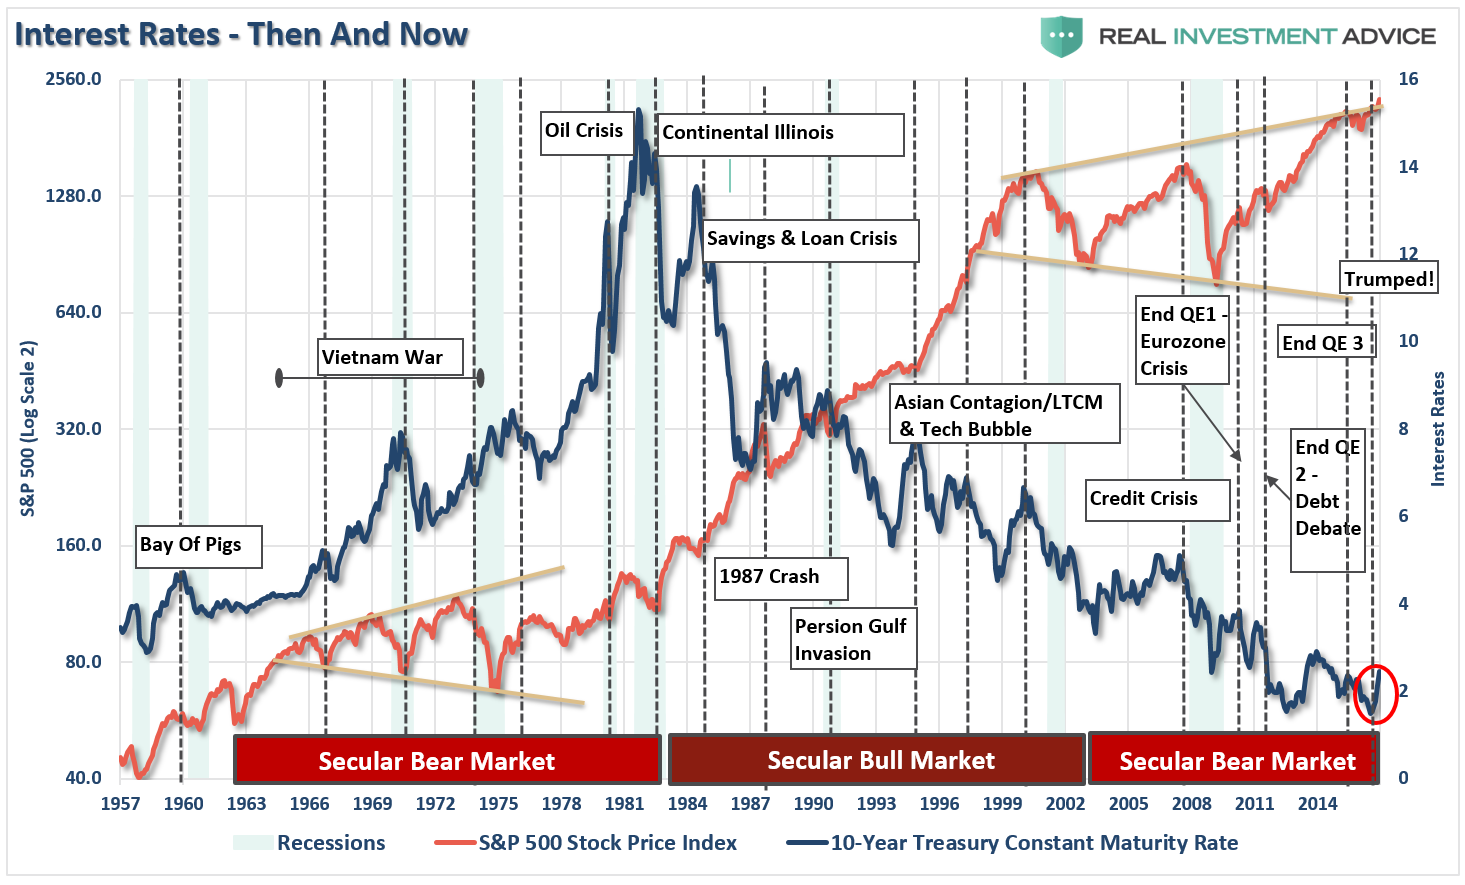 Interest Rates Then and Now